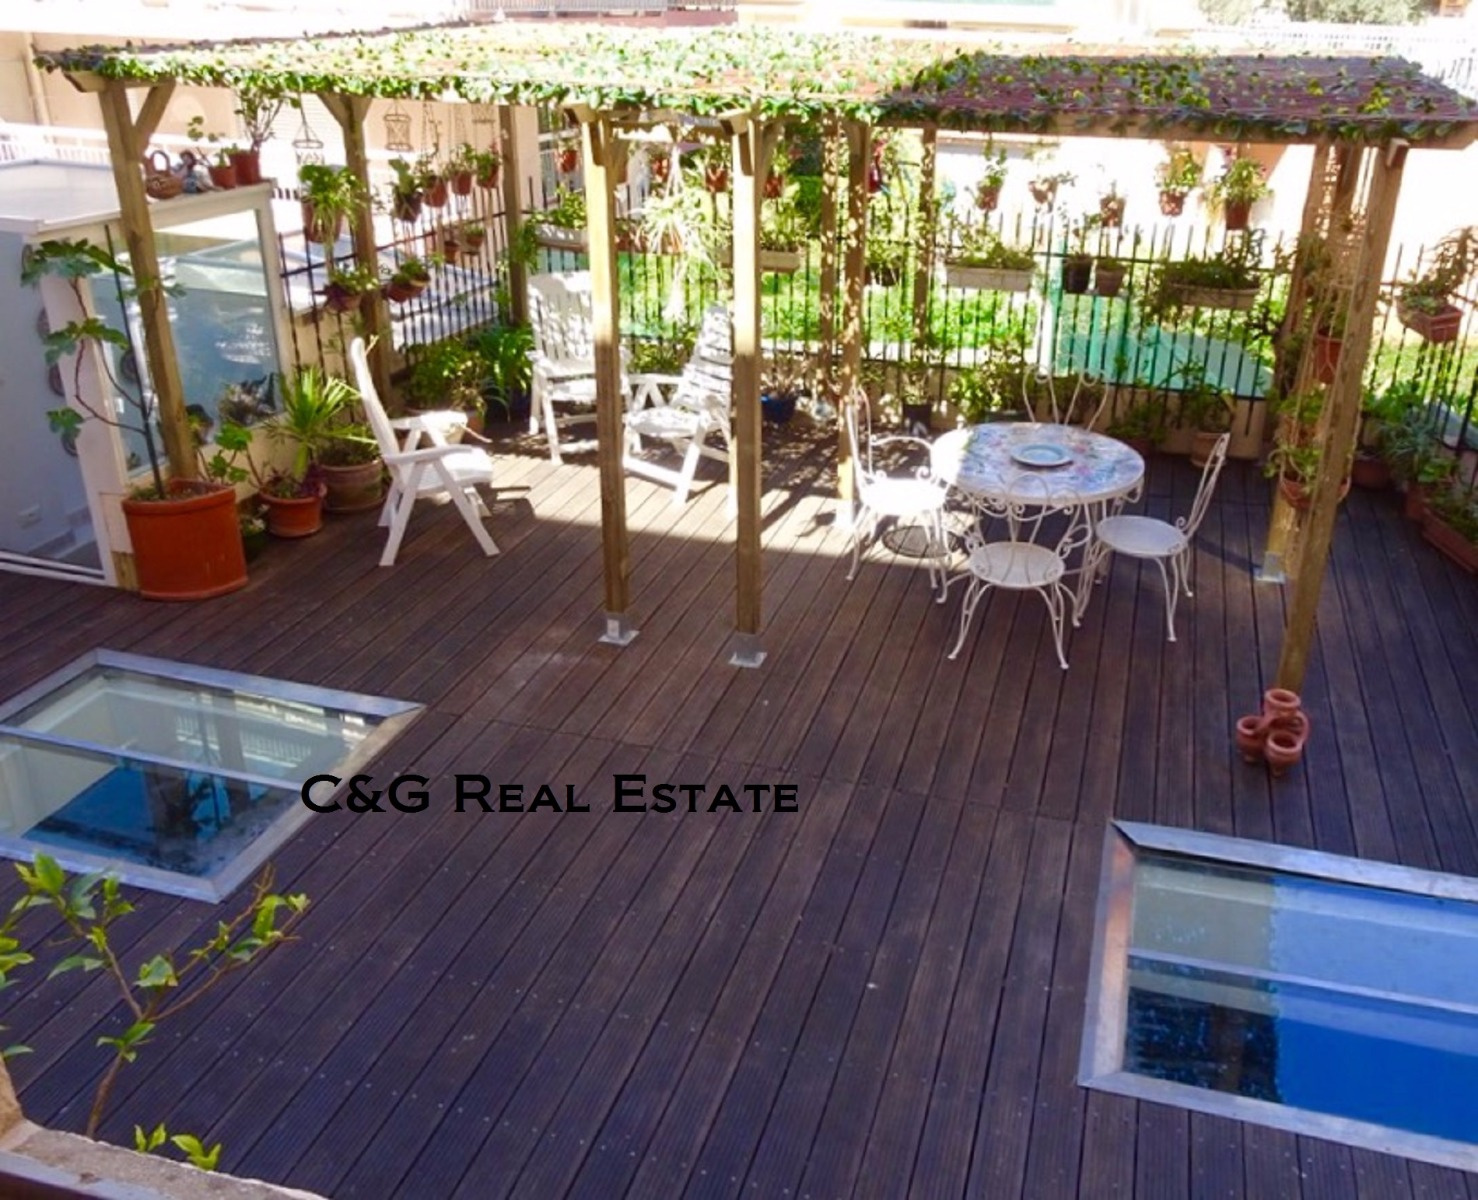 Vente menton quartier centenaire grand et atypique for Immobilier atypique nice